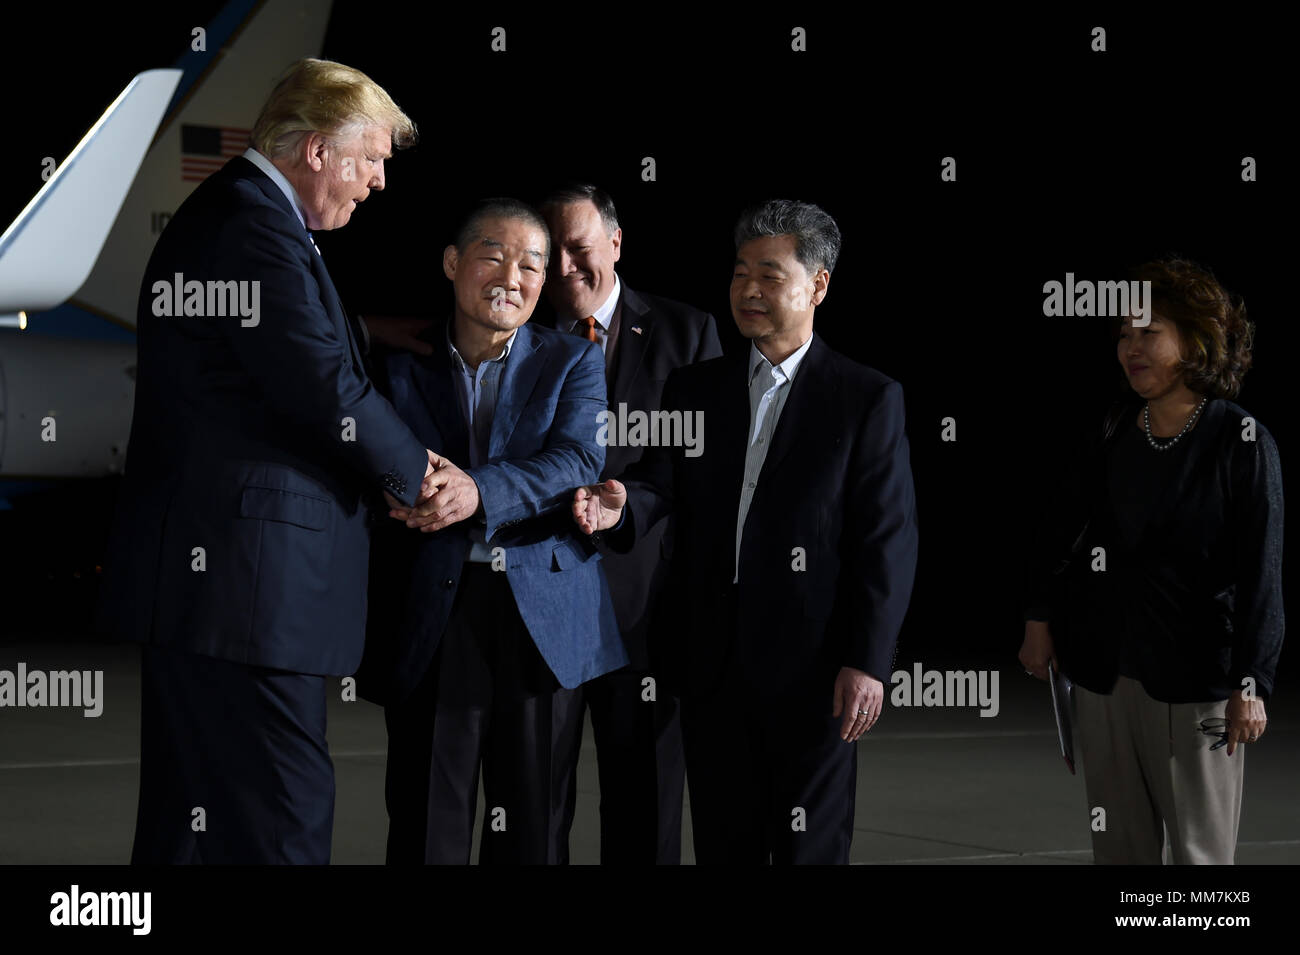 U.S. President Donald Trump and Secretary of State Mike Pompeo welcome home three American detainees freed by North Korea on arrival at Joint Base Andrews May 10, 2018 in Clinton, Maryland. The three include Kim Dong-chul, Tony Kim and Kim Hak-song released as a gesture of goodwill ahead of the planned meeting between Trump and North Korean leader Kim Jong-un. - Stock Image